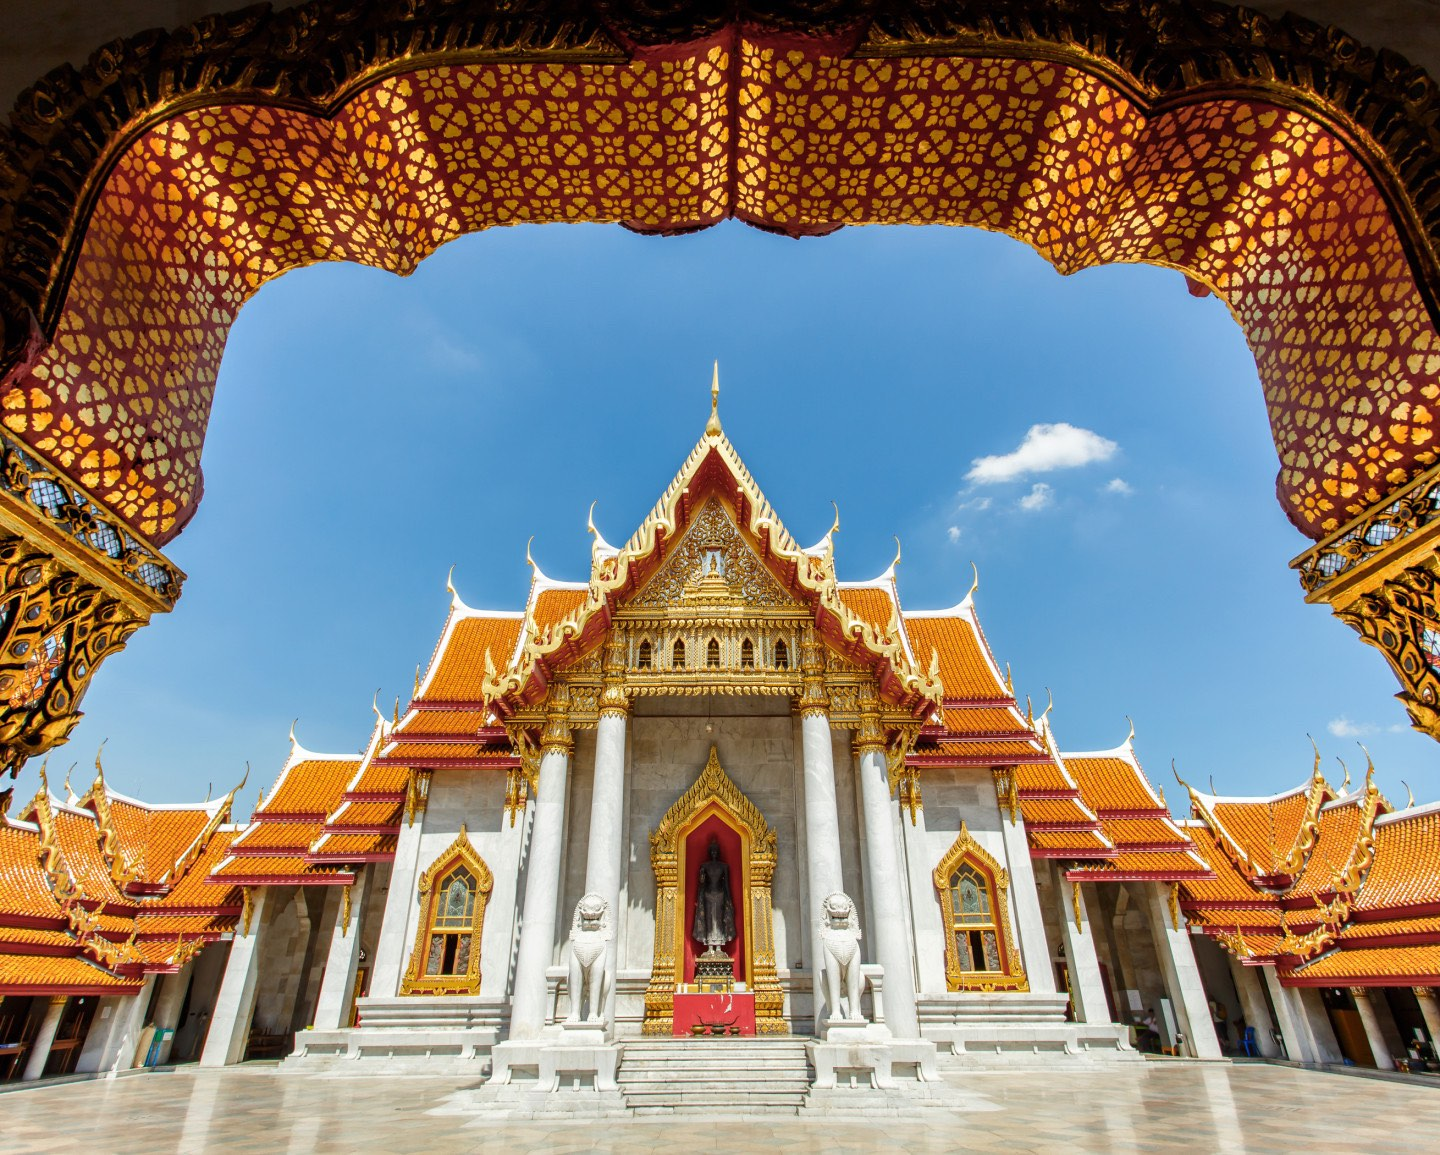 The gateway view of the Grand Palace in Bangkok, Thailand.